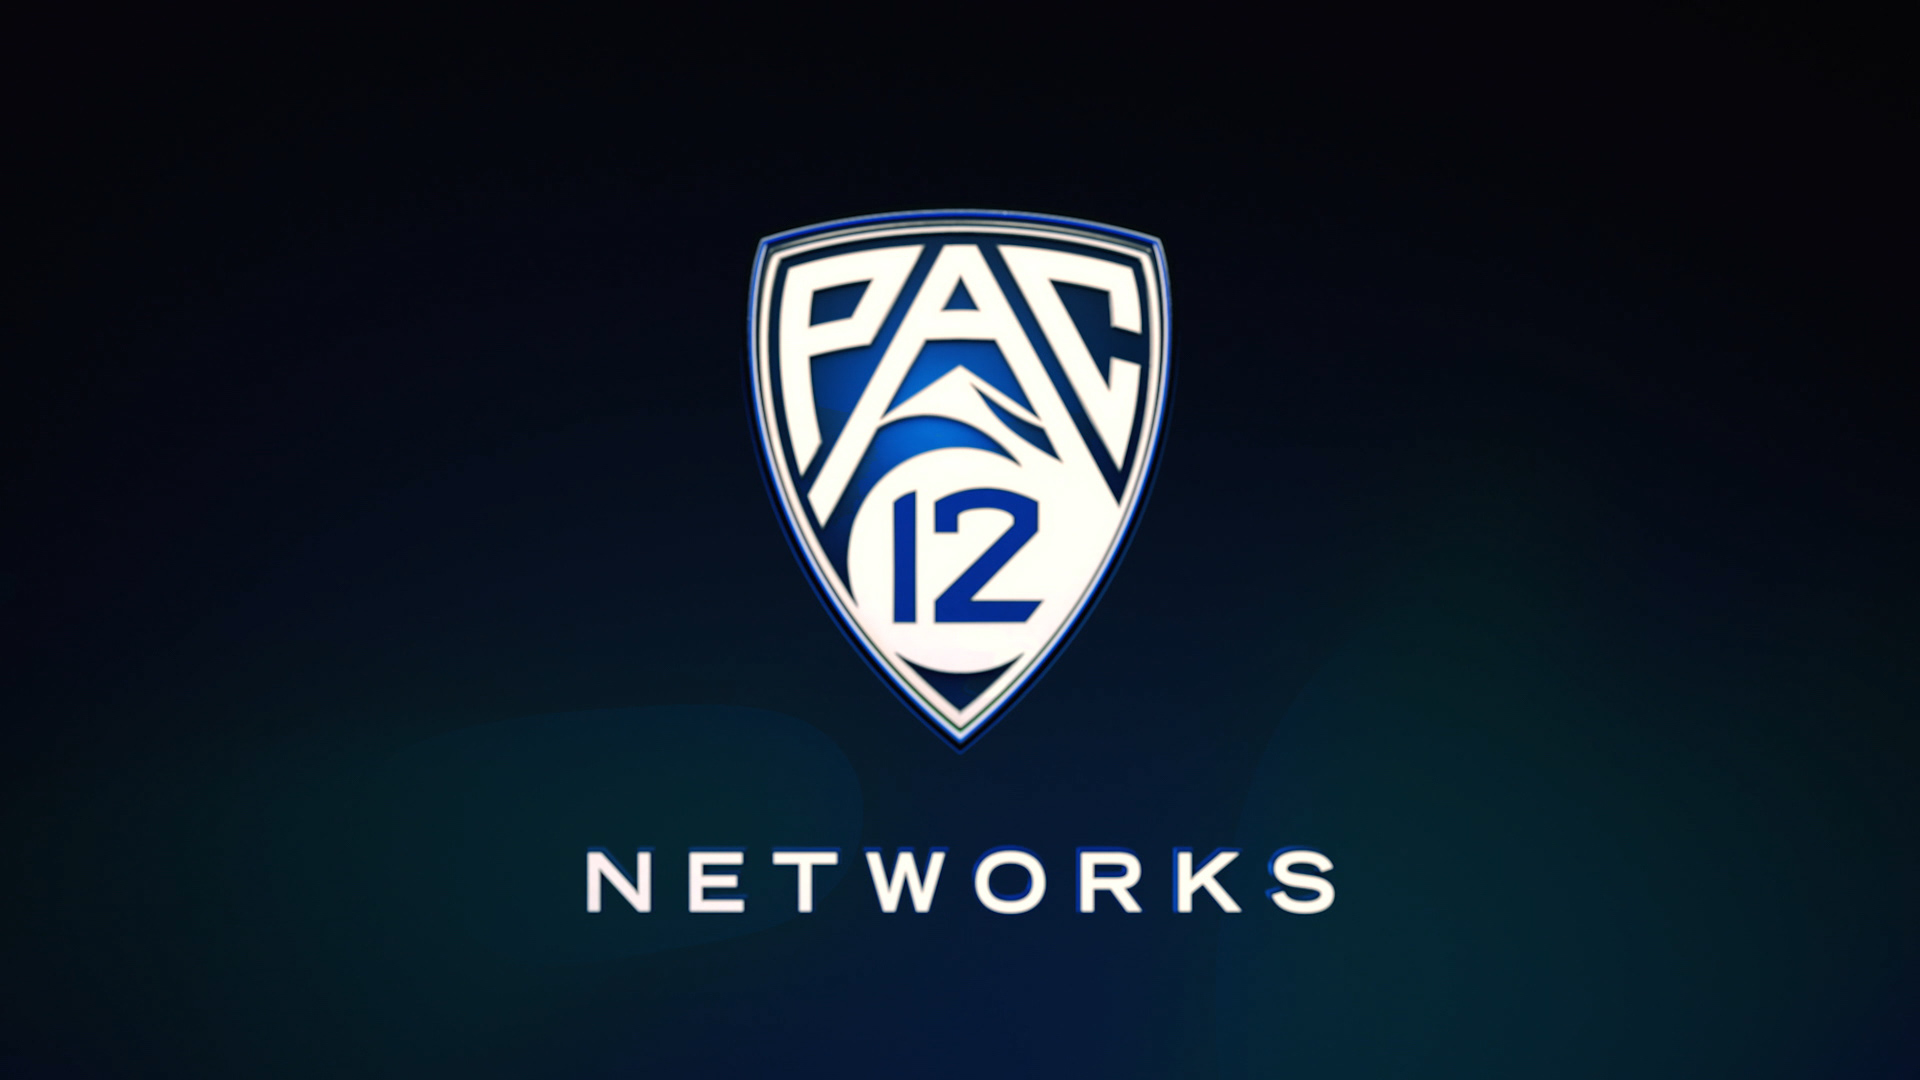 PAC 12 CHANNELS LIVE STREAM